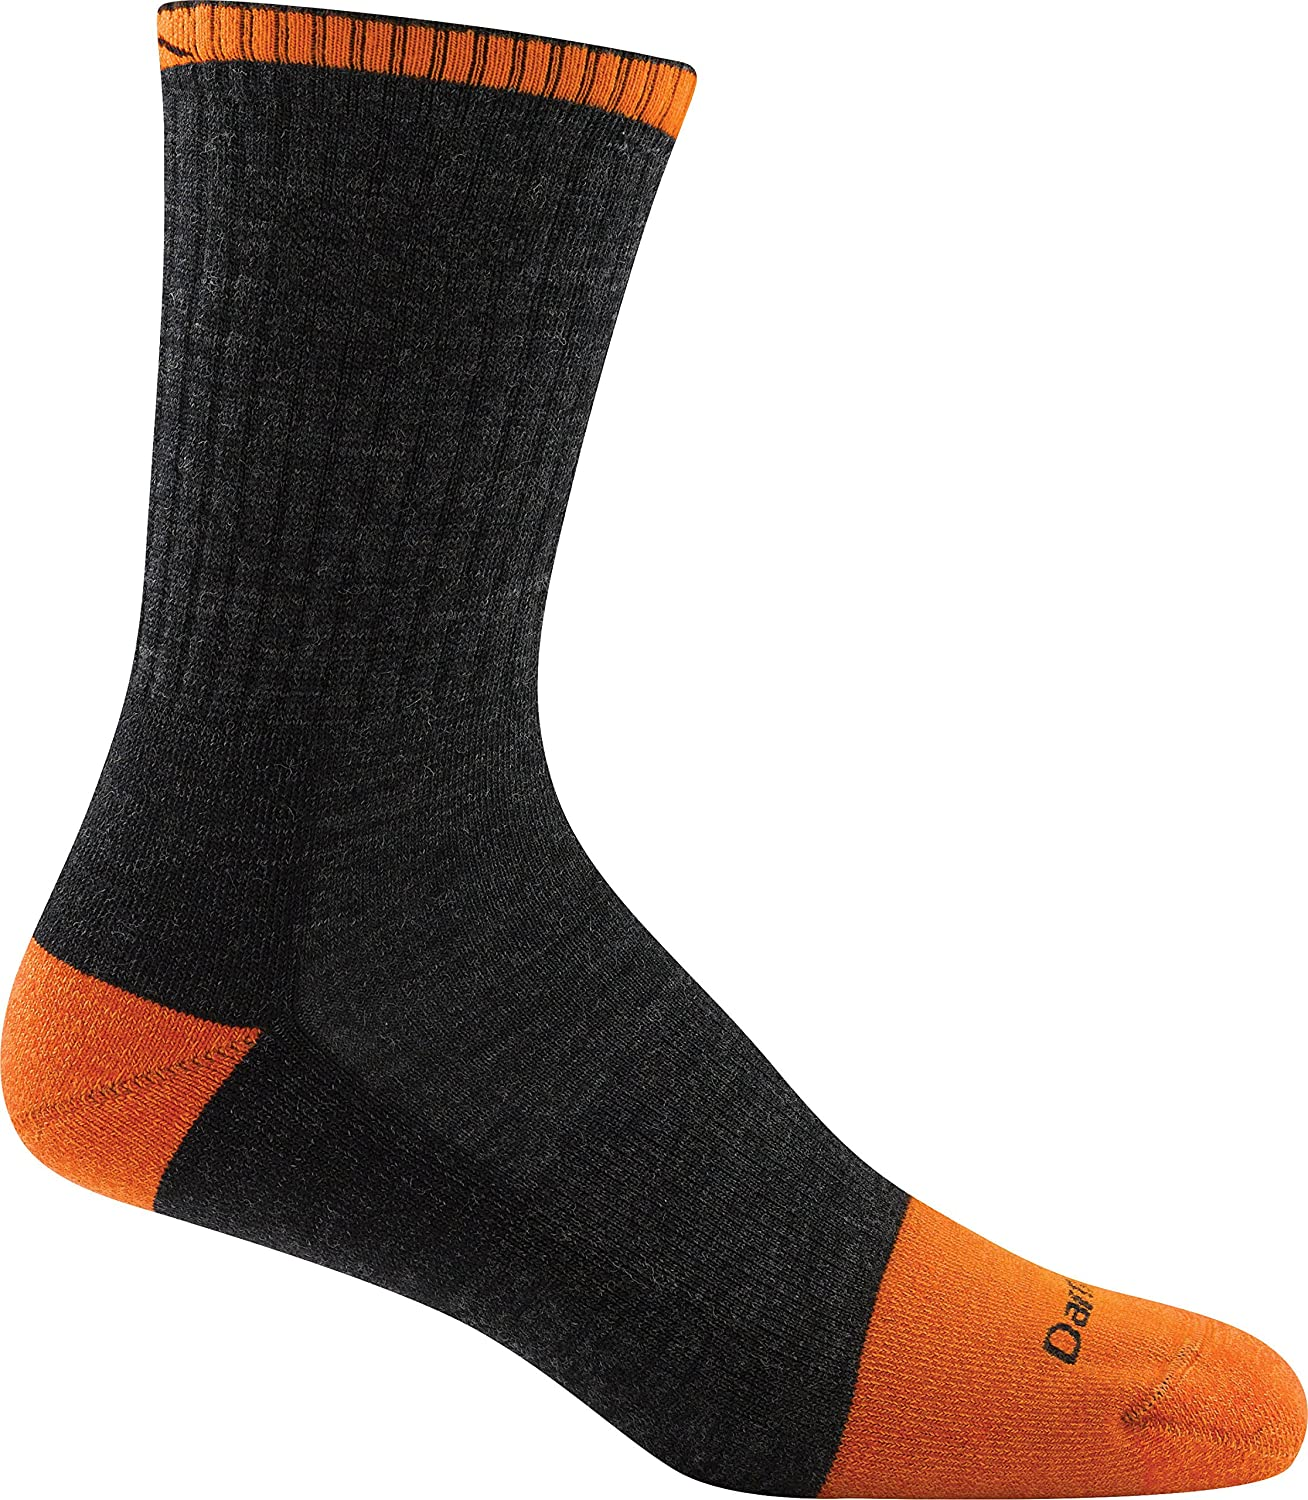 Darn Tough Men's Steely Micro Crew Cush W/Full Cush Toe Box Graphite socks